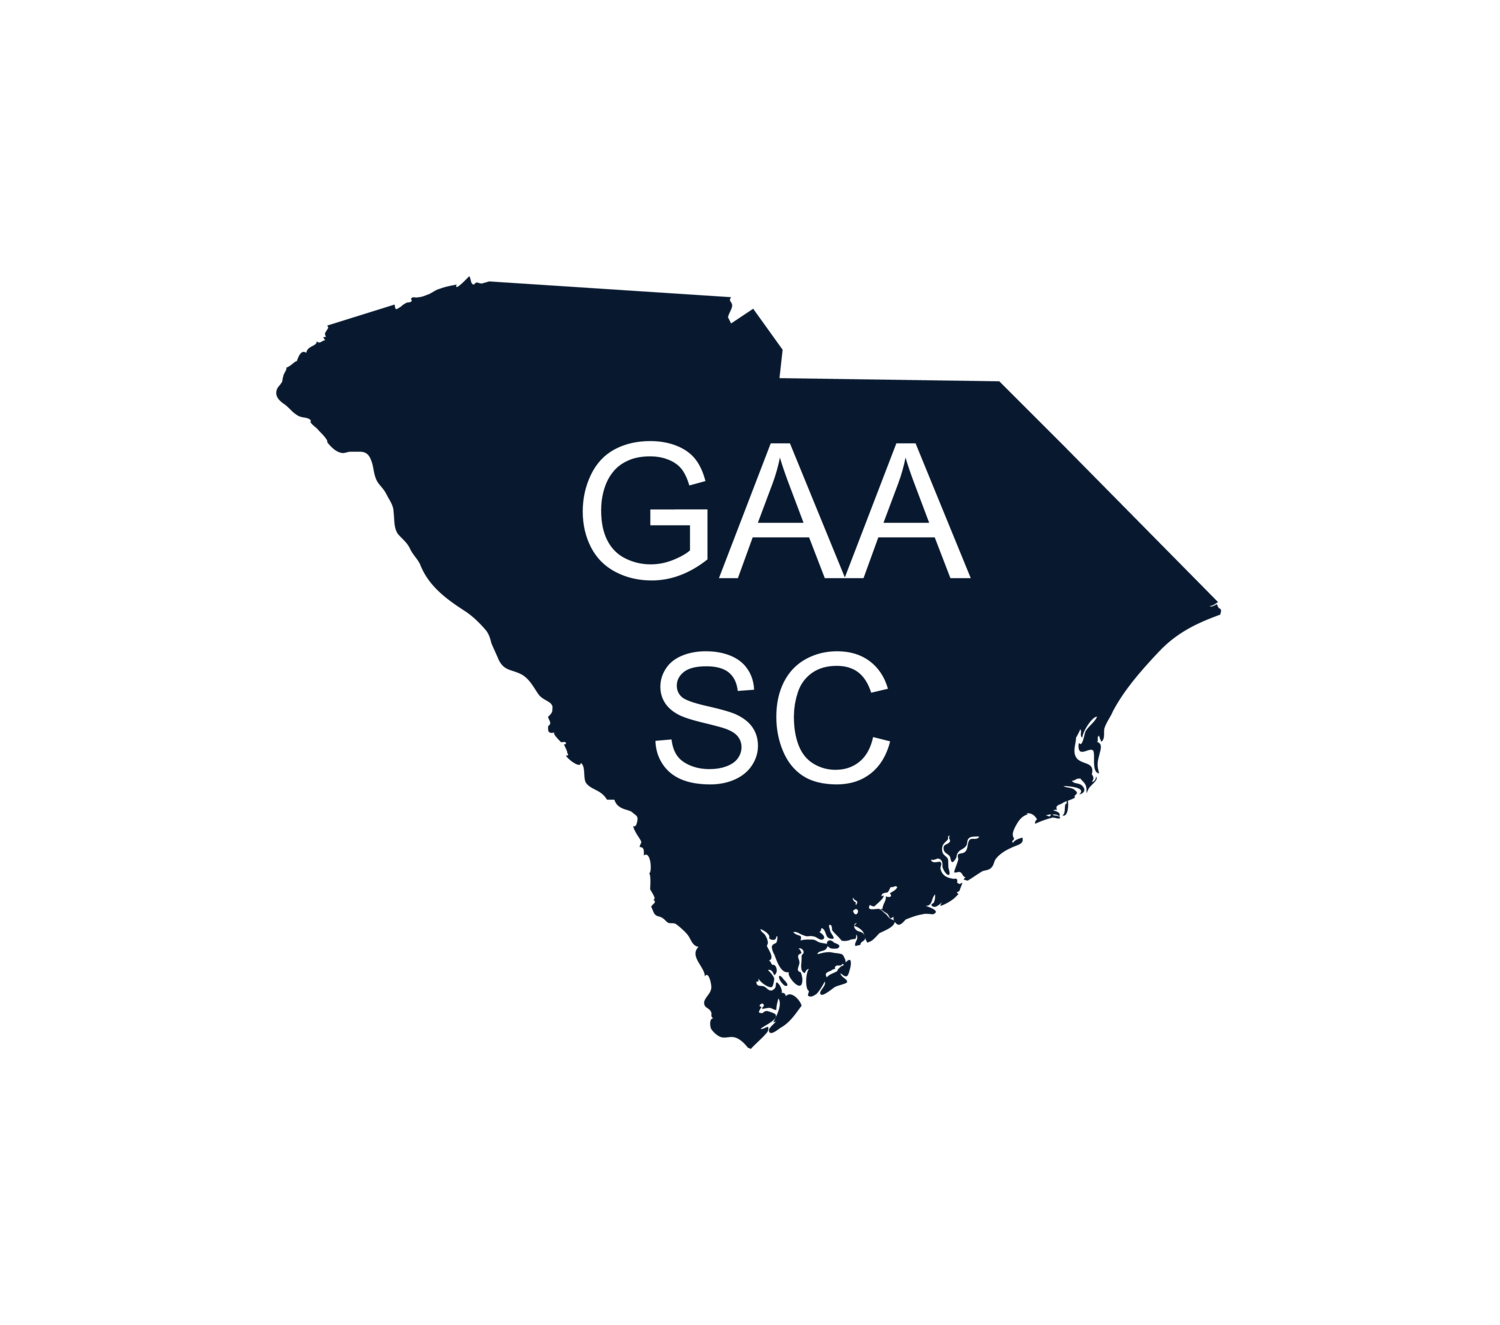 Manager clipart administrator. Geospatial administrators association of